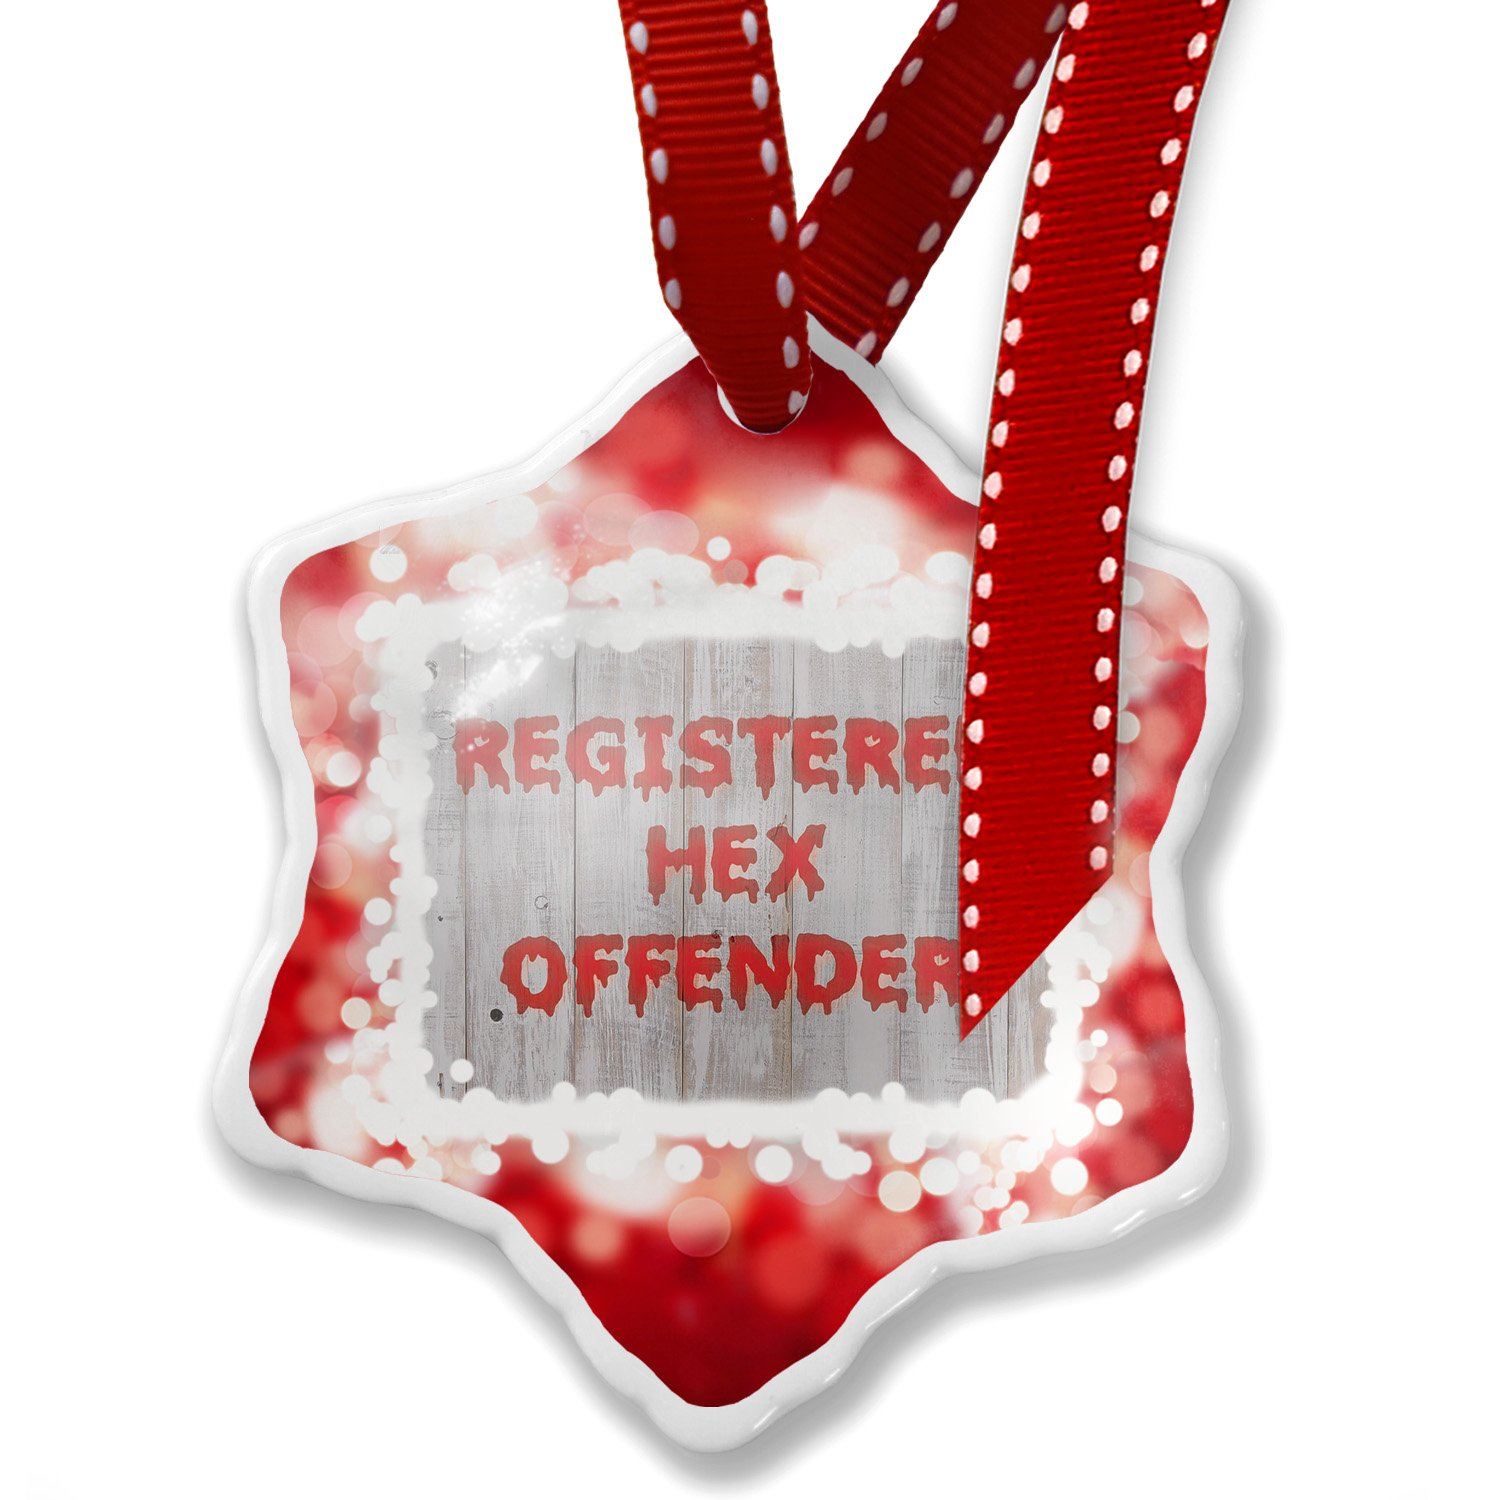 Christmas Ornament Registered Hex Offender Halloween Bloody Wall, red - Neonblond